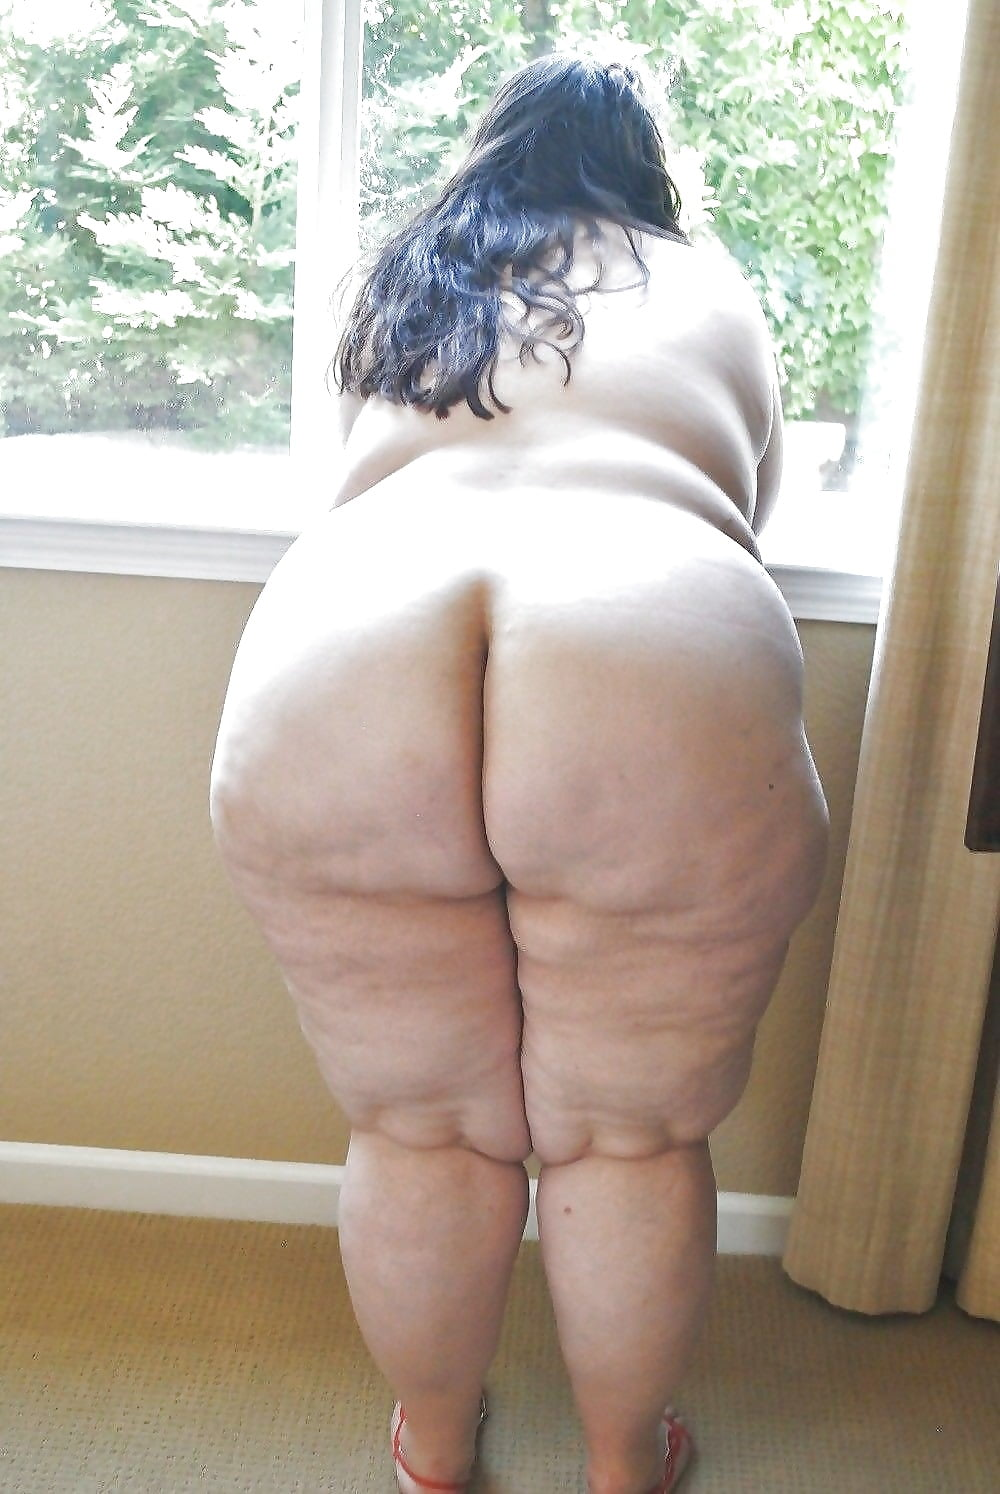 bbw-big-butt-links-down-syndrome-facial-appearancetures